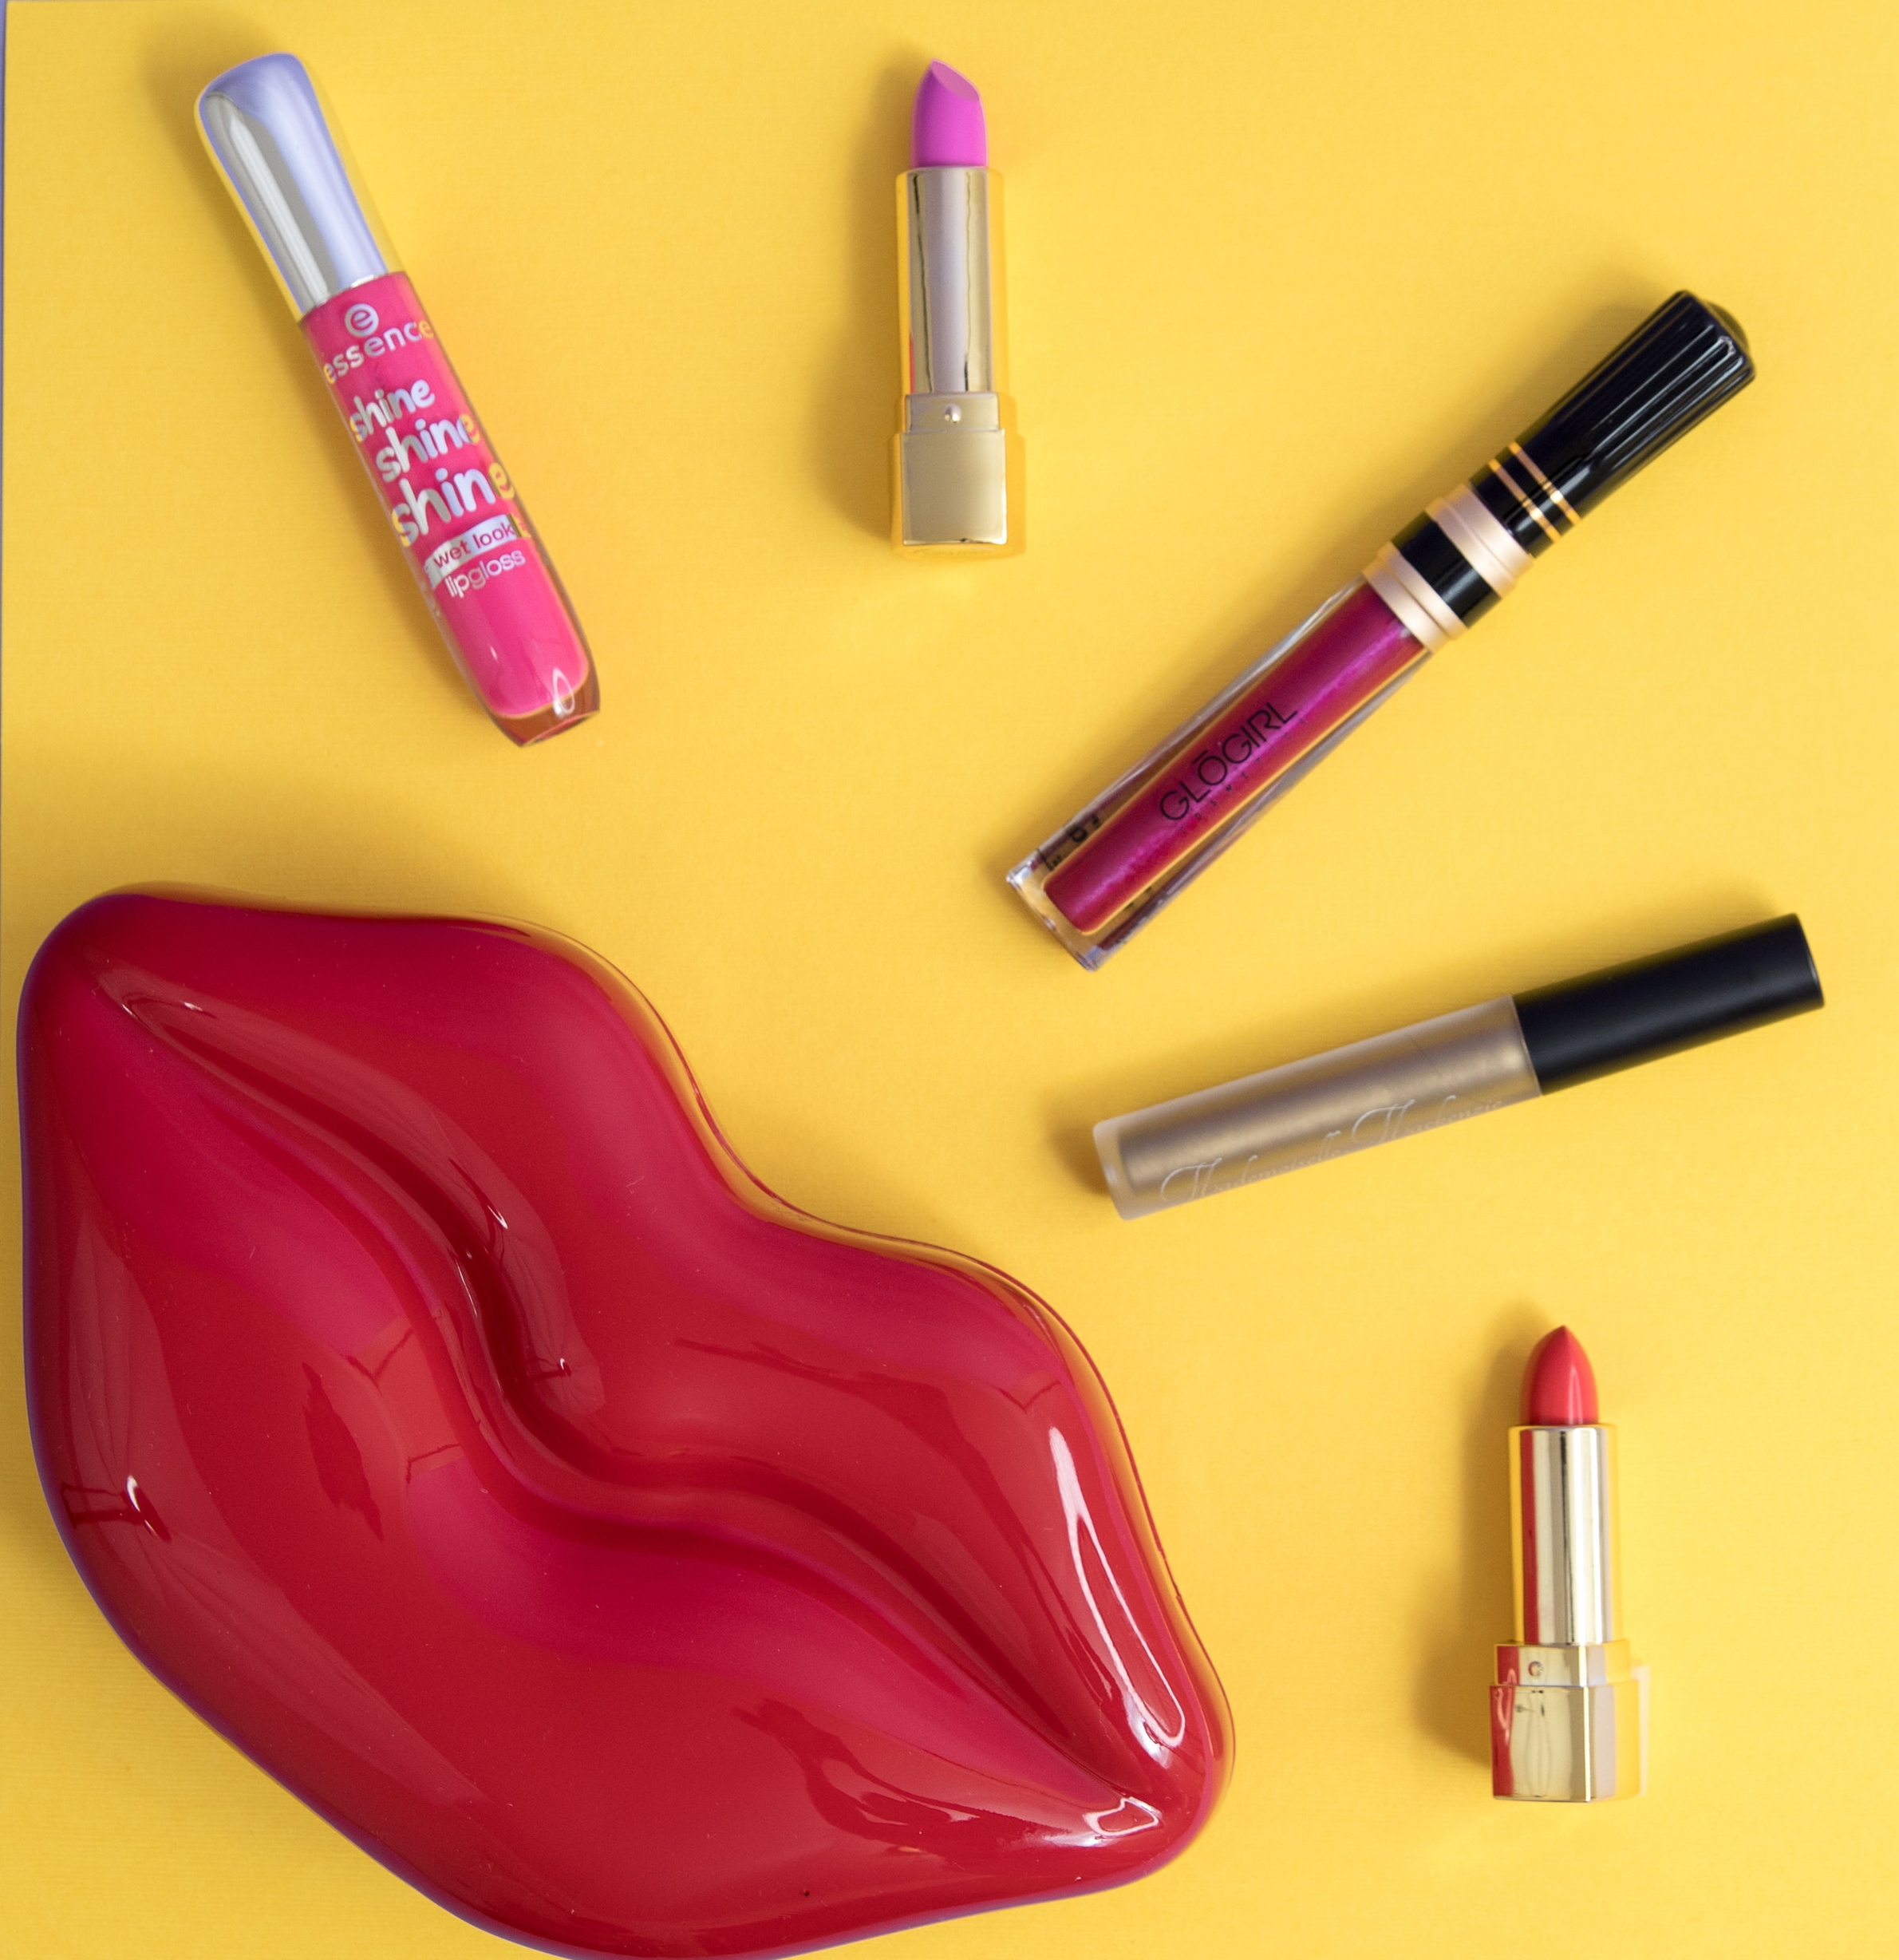 "Lipsticks come in a rainbow of shades, perfect for Spring 2018! Check out our favorites (from left to right:  Essence Shine Shine Shine Lipgloss  in ""Flirt Alert,"" GloGirl Cosmetics Lipstick in "" Hella Pink ,"" GloGirl Cosmetics Lip Drips in "" Pimp Juice ,""Mademoiselle Mackenzie Bold Liquid Lipstick - Metallic Edition in "" Tarnished Gold ,""GloGirl Cosmetics Lipstick in  "" Lucille ."""